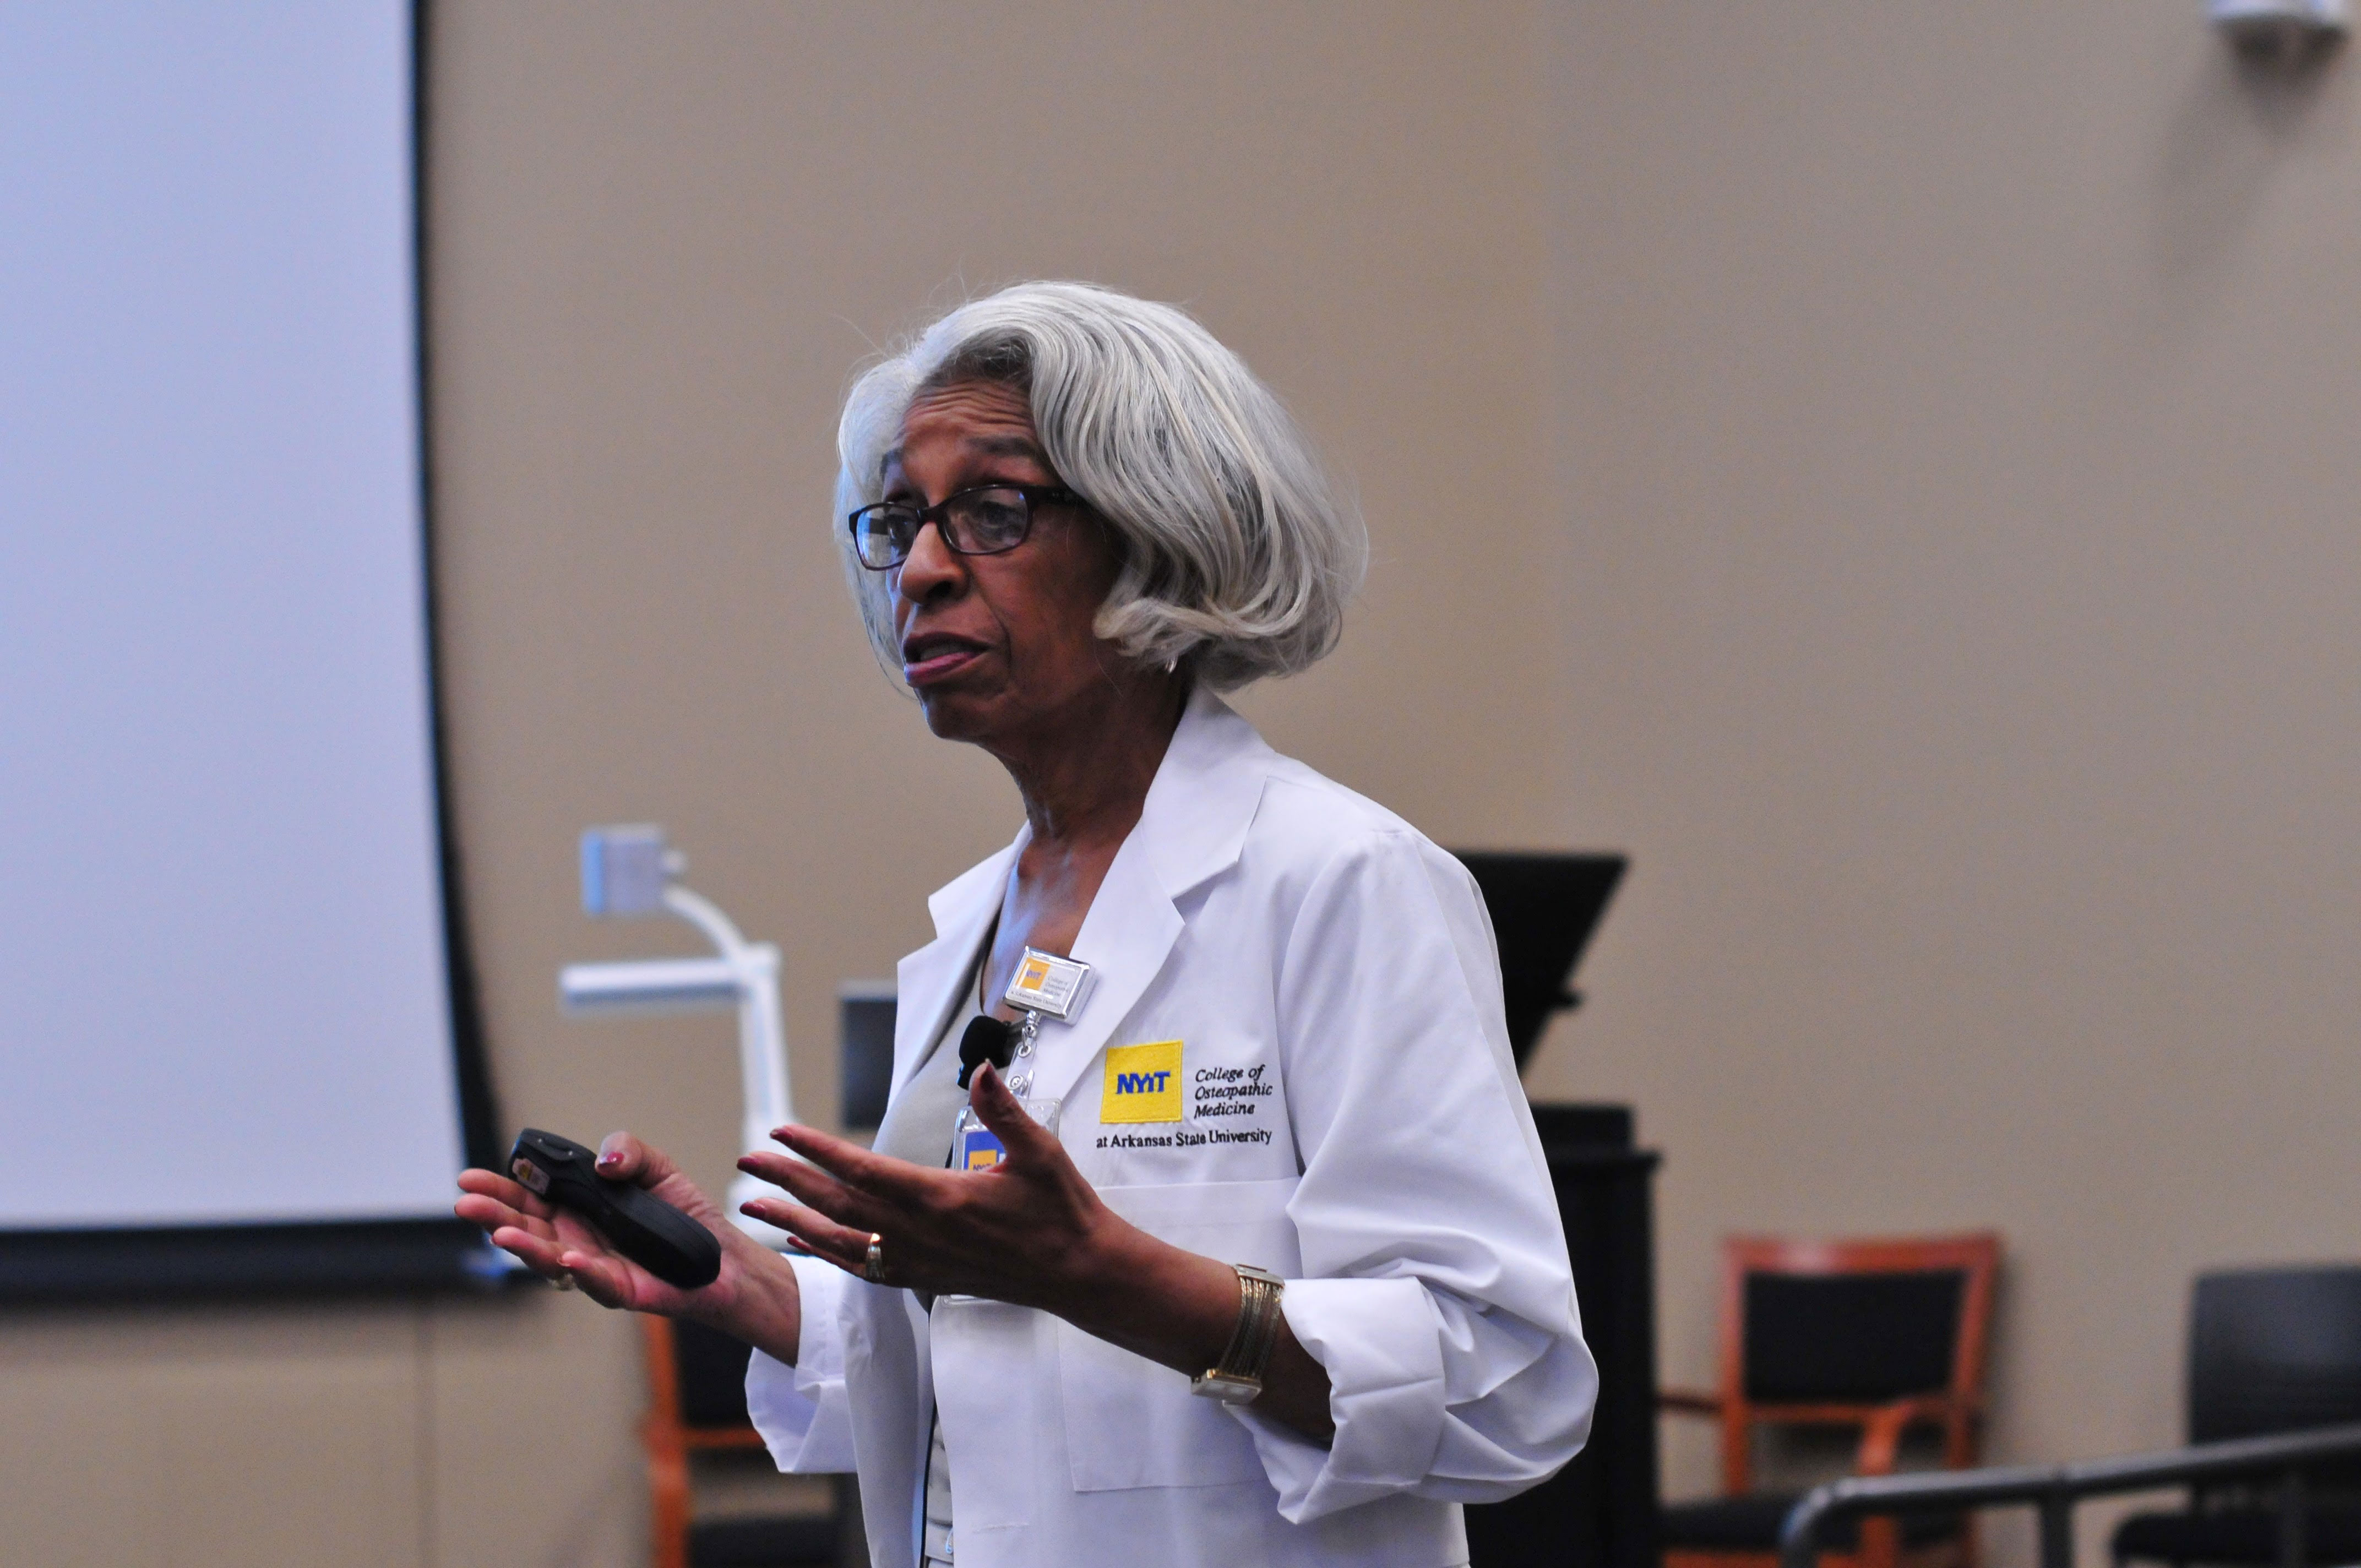 Barbara Ross-Lee, the first African-American woman to become dean of a medical school